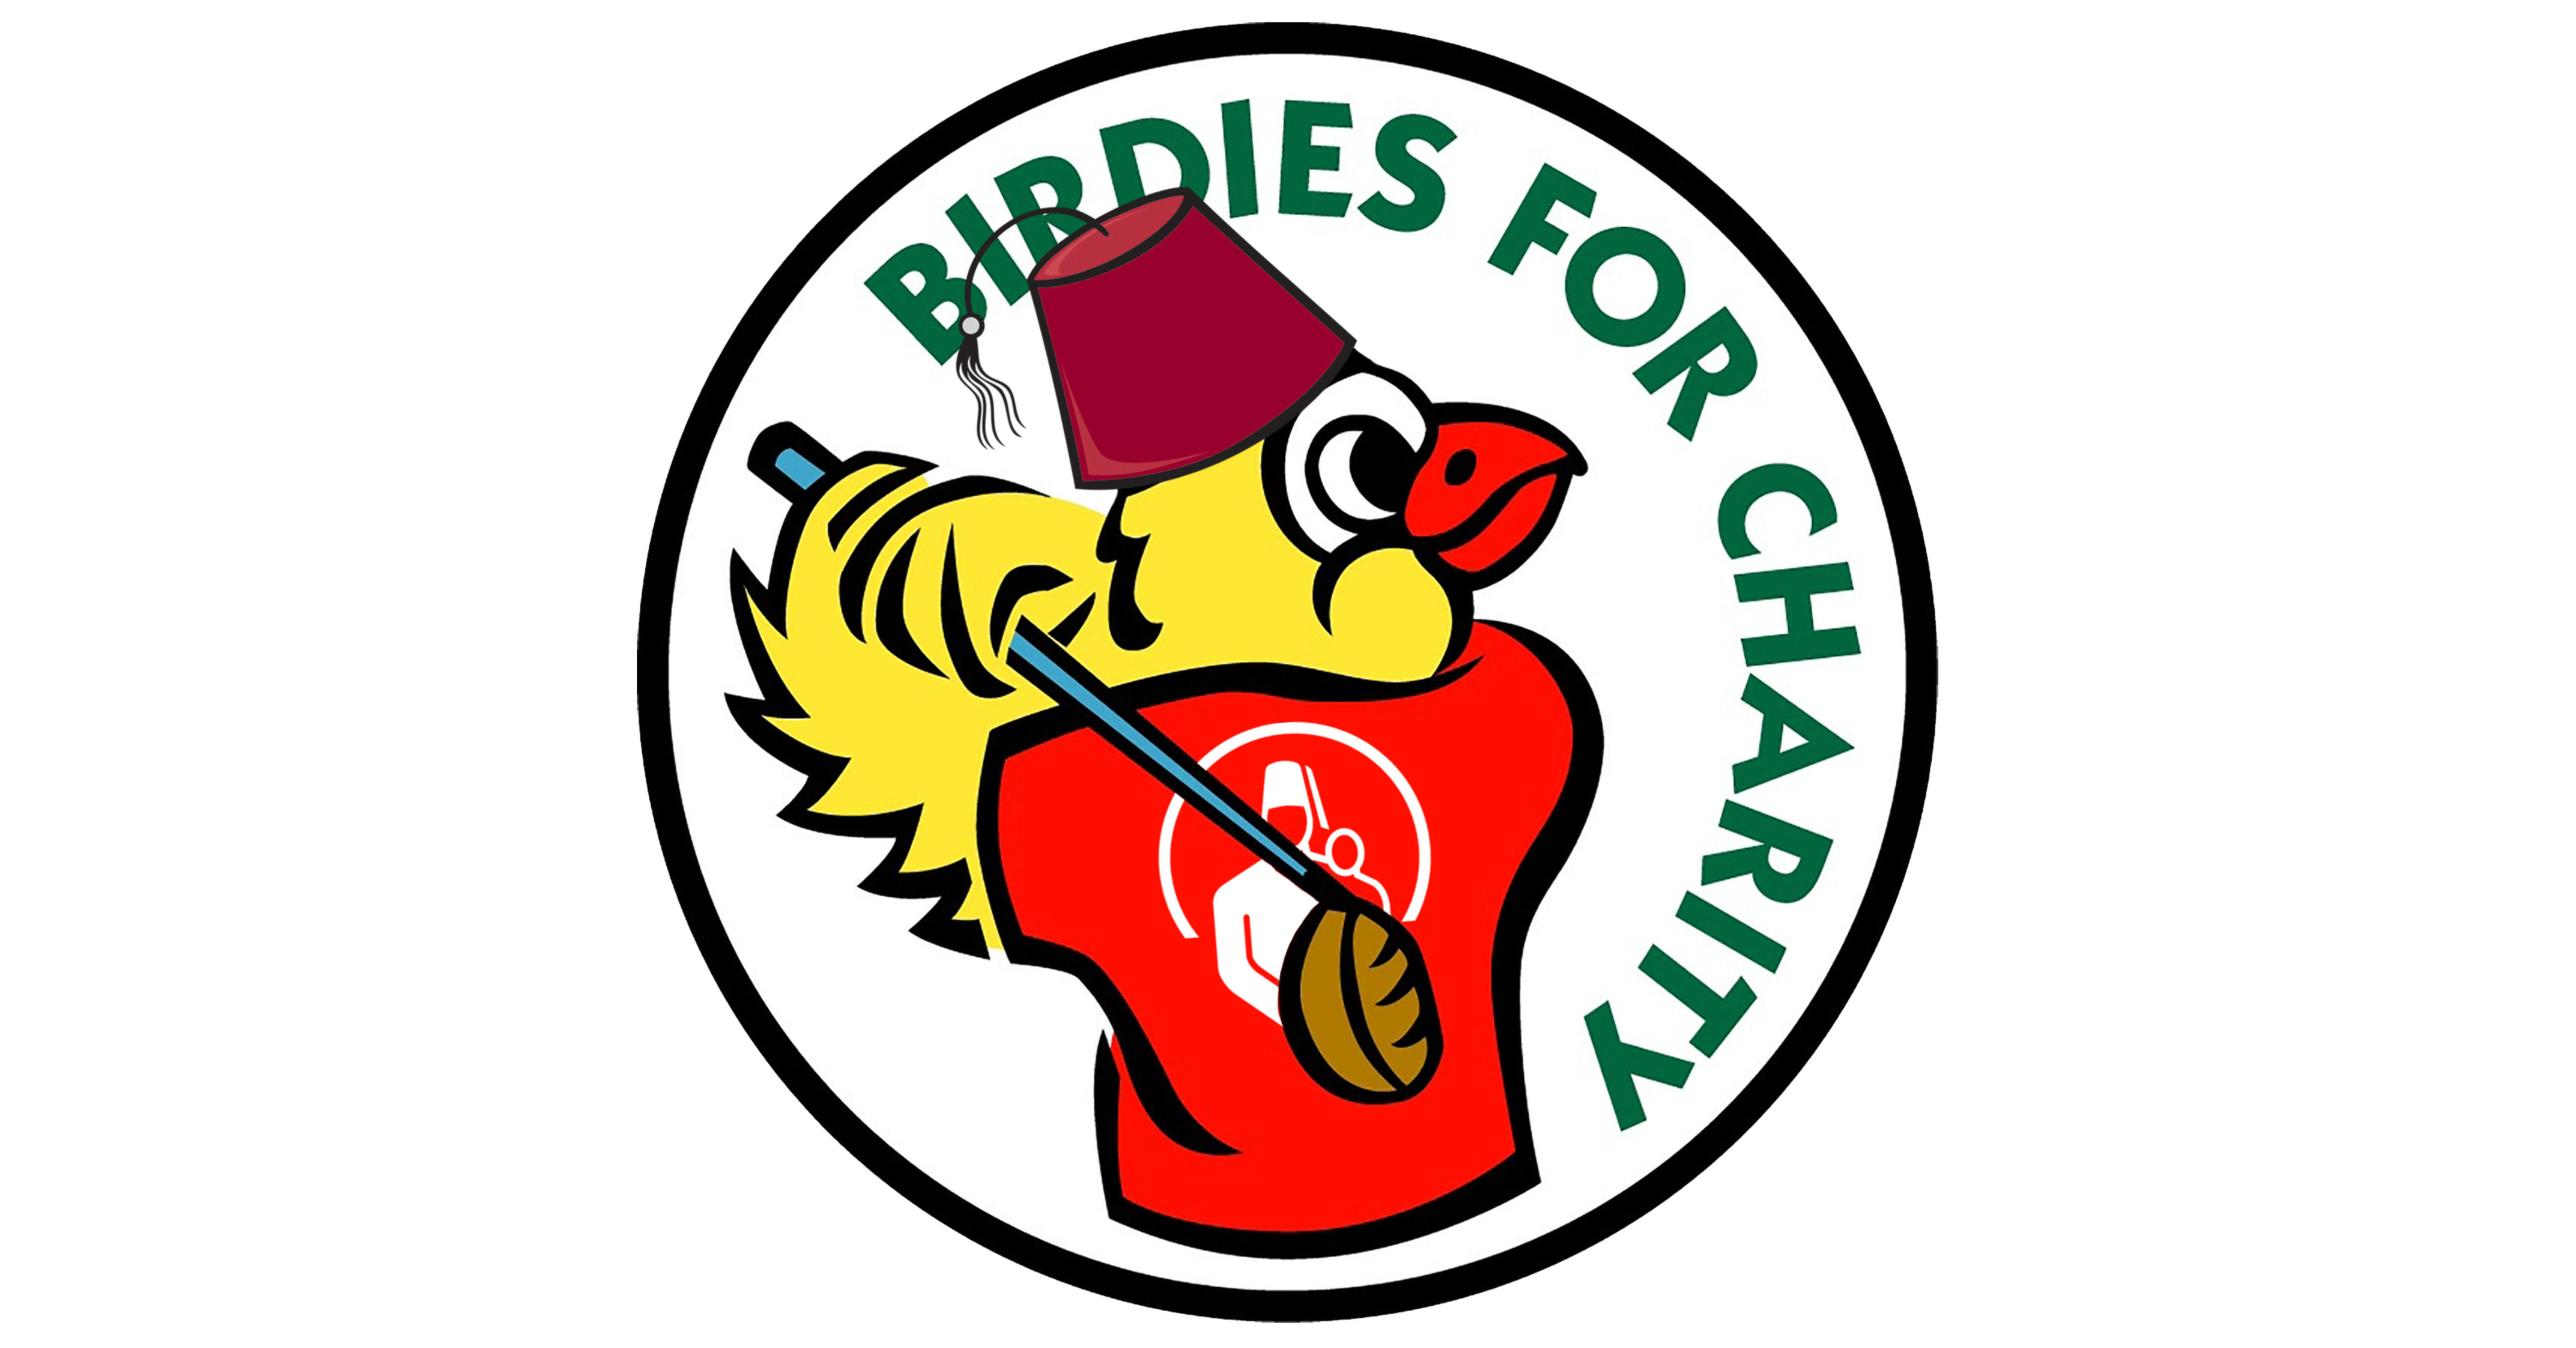 Shriners hospitals for children launches birdies for charity buycottarizona